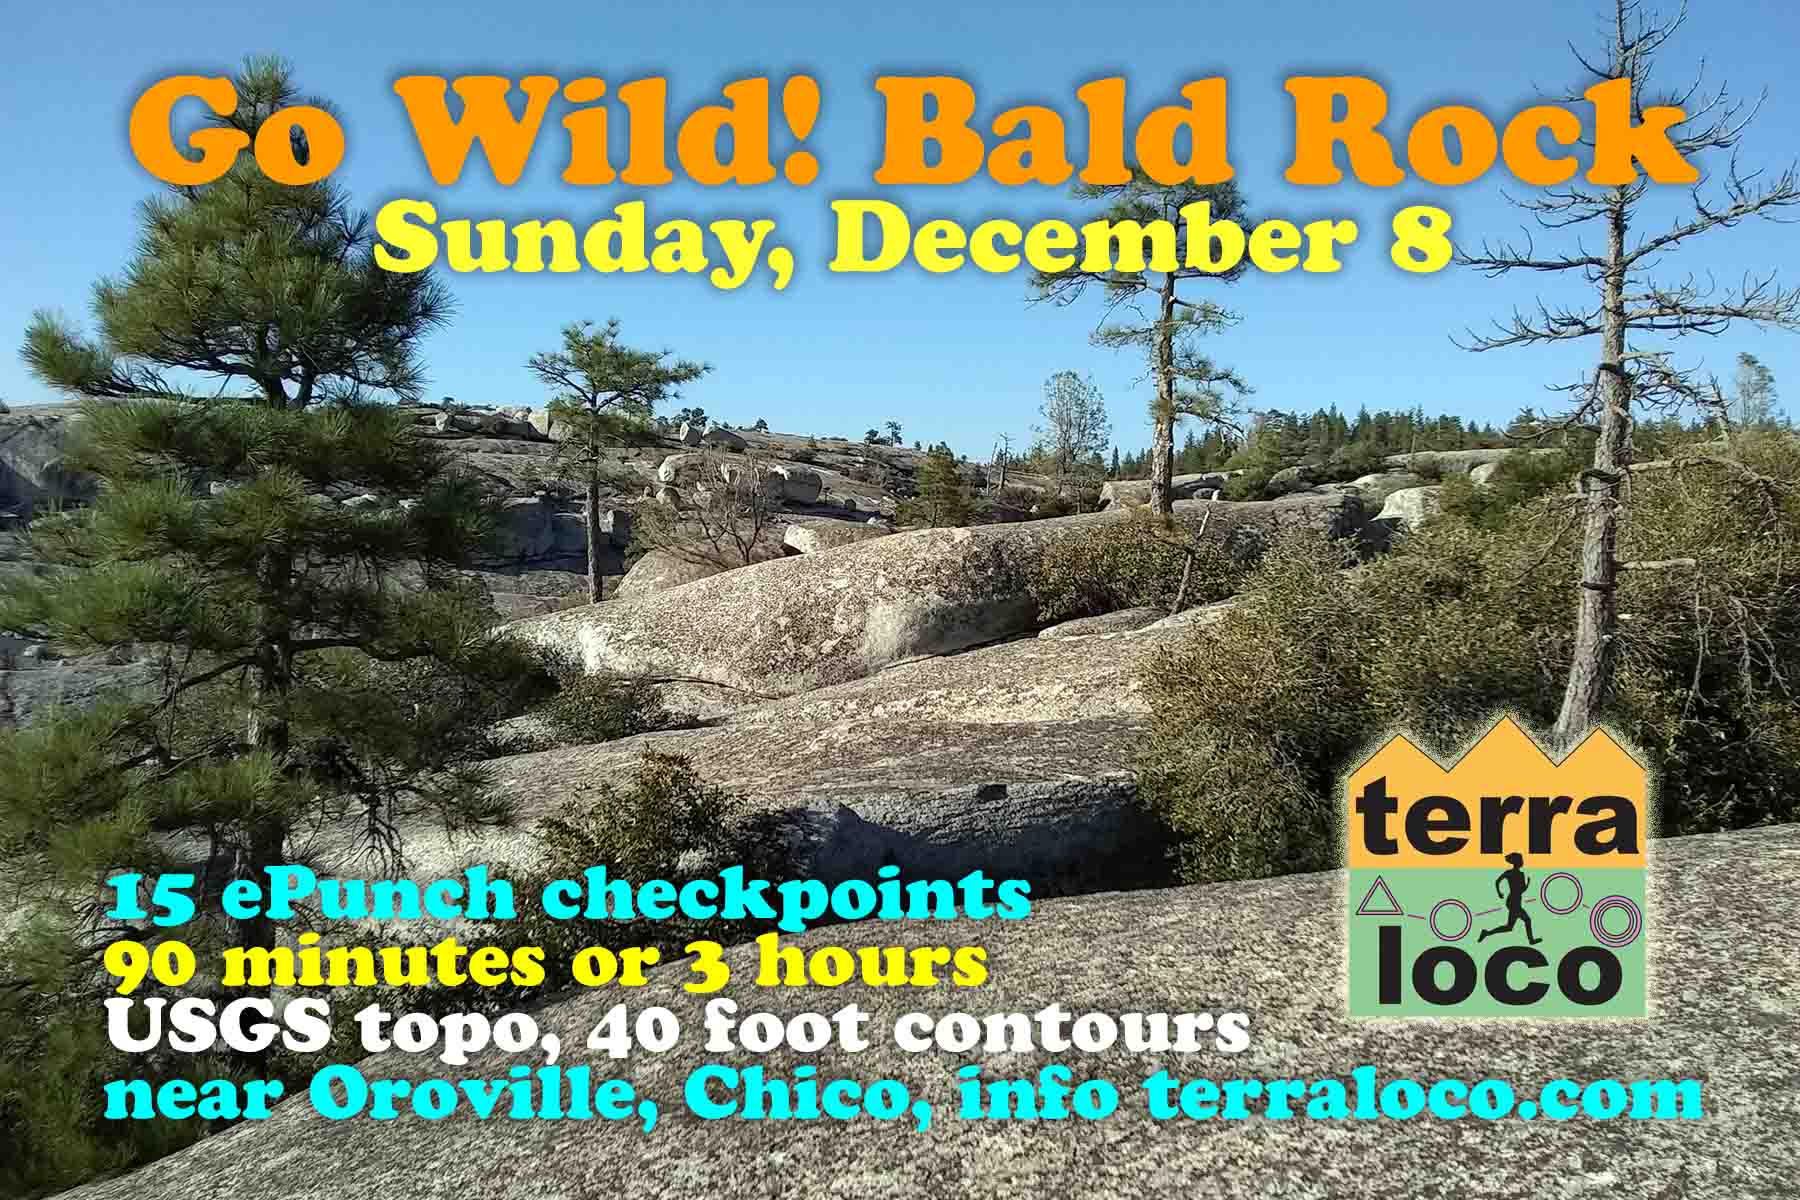 Go Wild! Bald Rock 90 min, 3 hr